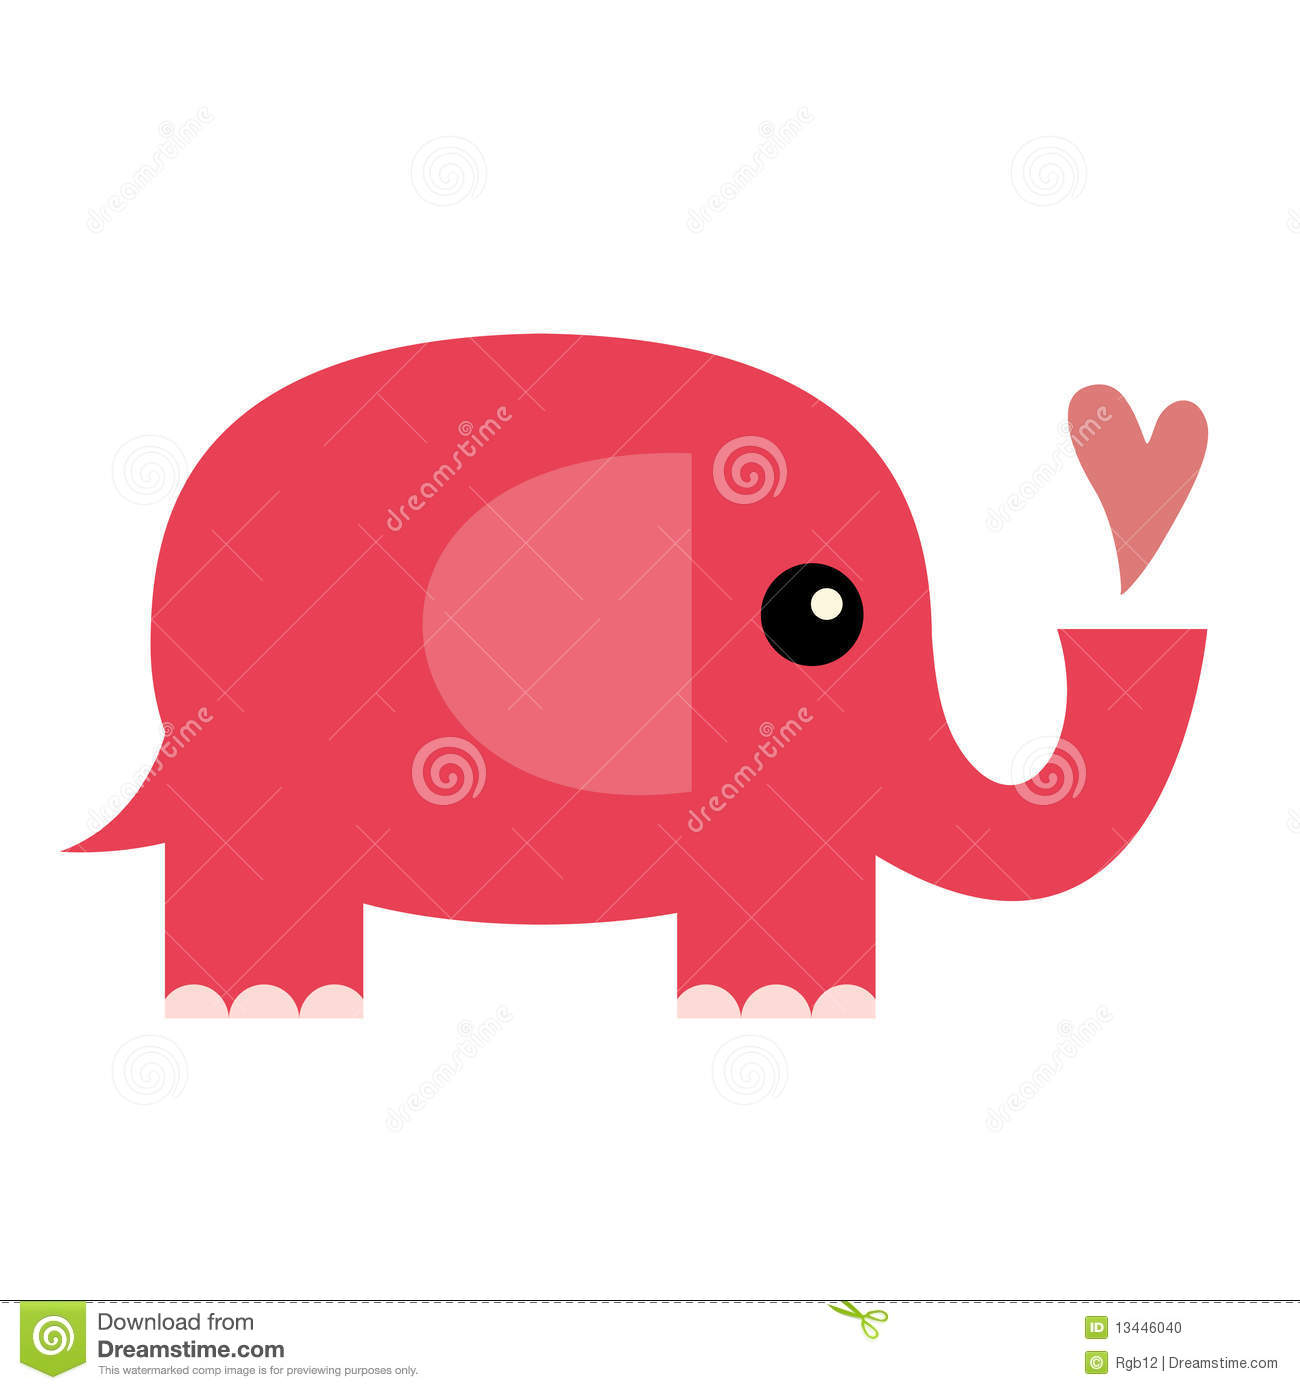 elephant love dating Elephant talk podcast love, real love, in all of its raw, beautiful, dirty, confusing, funny, and sexy forms is what connects us.